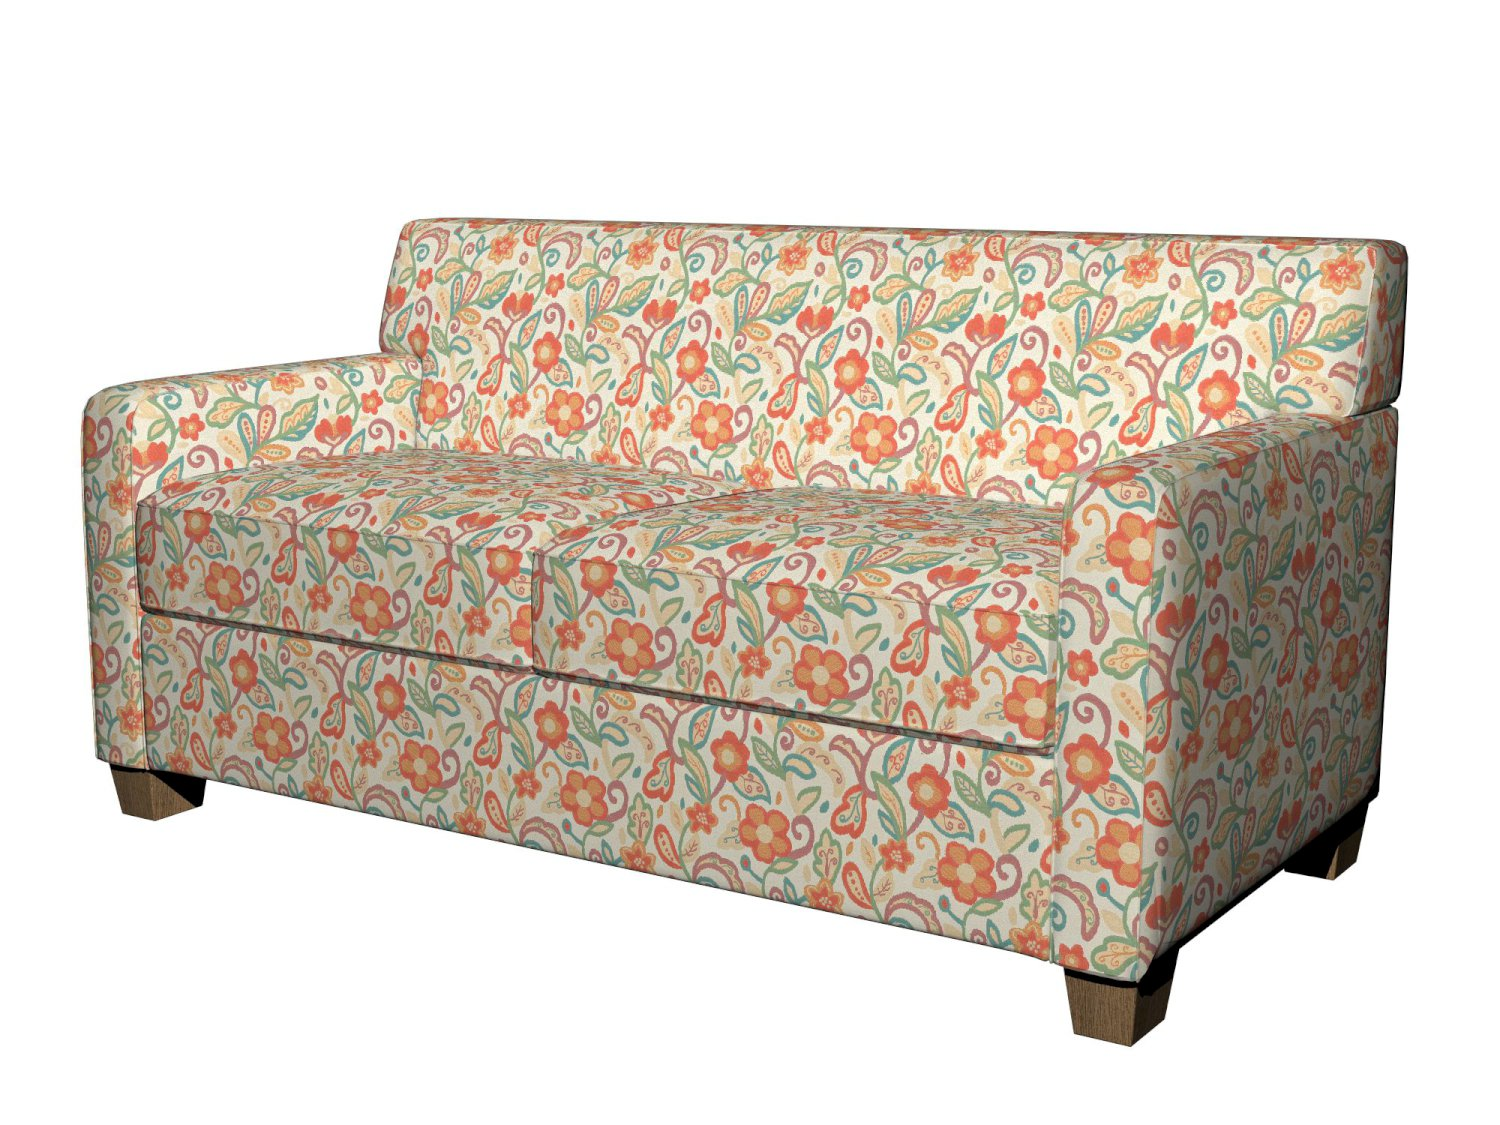 green floral sofa best transitional sofas a0023a teal orange beige contemporary